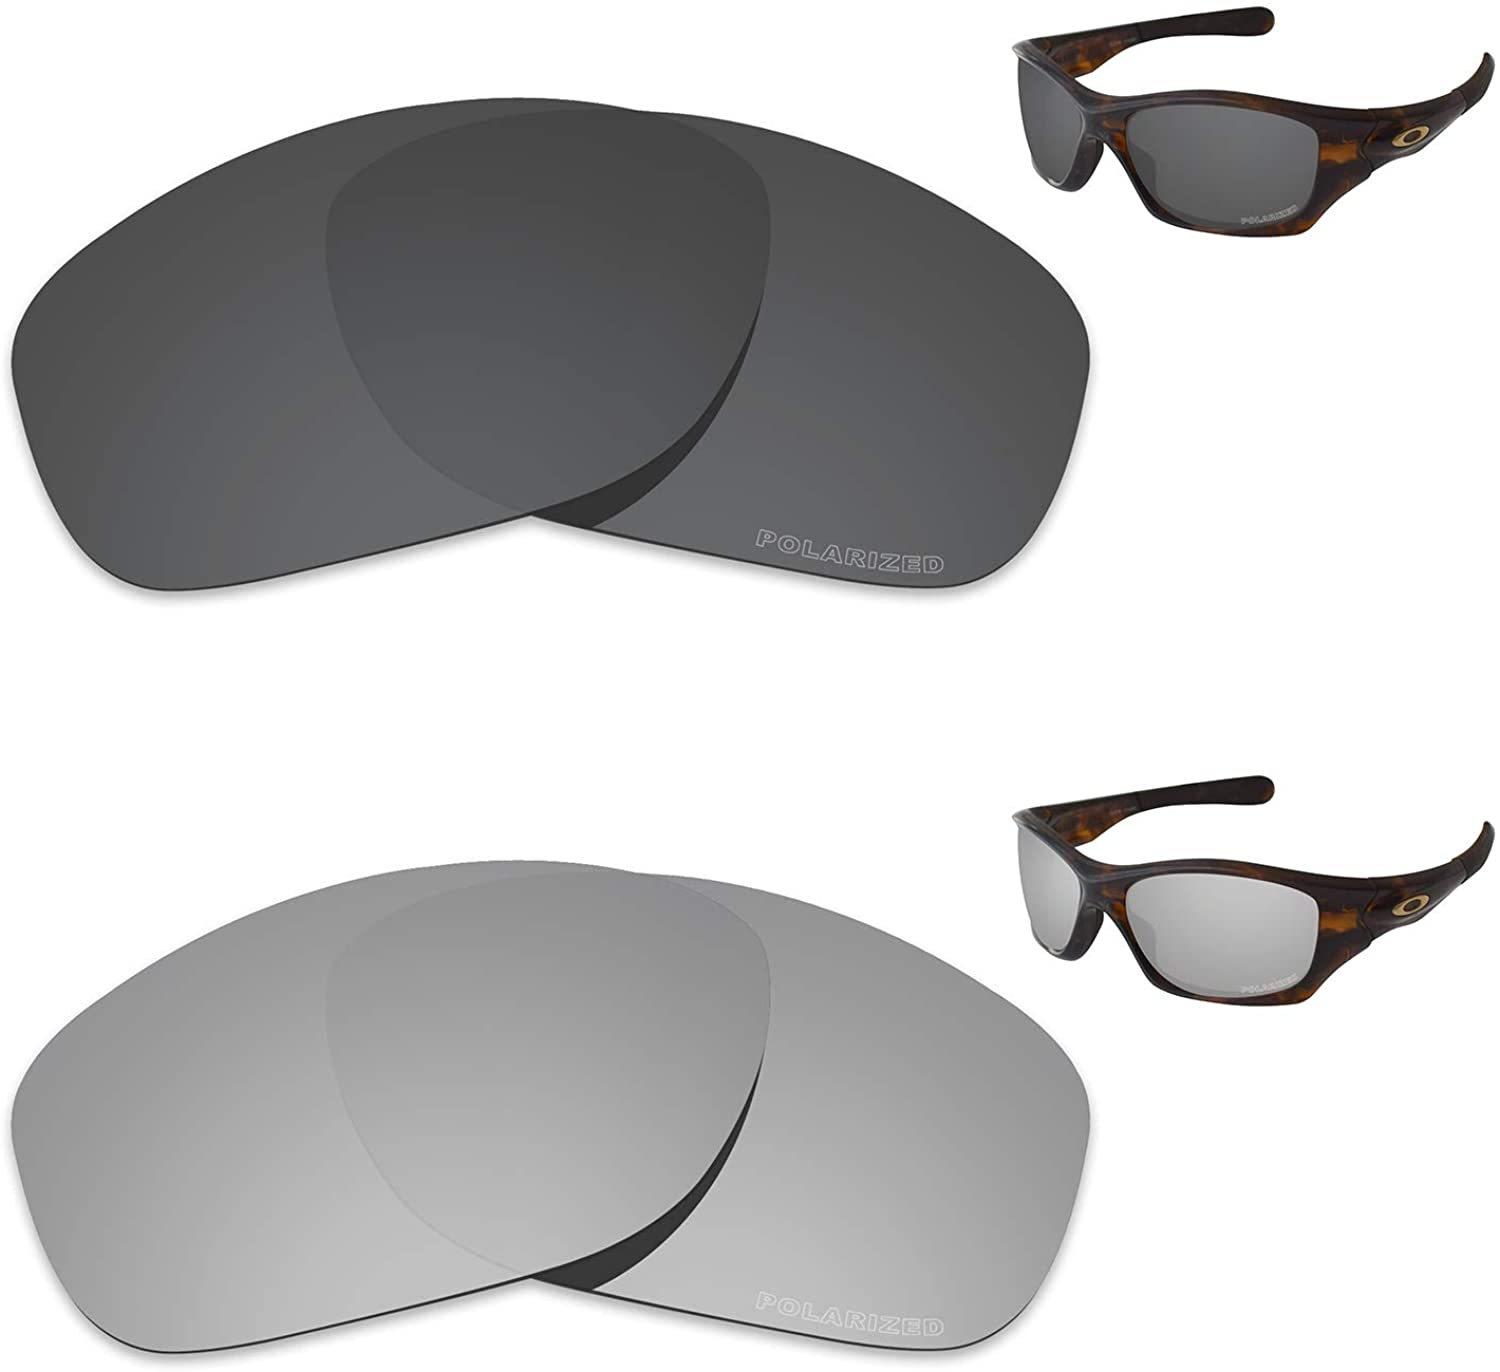 Tintart Performance Replacement Lenses for Oakley Pit Bull Polarized Etched - Value Pack